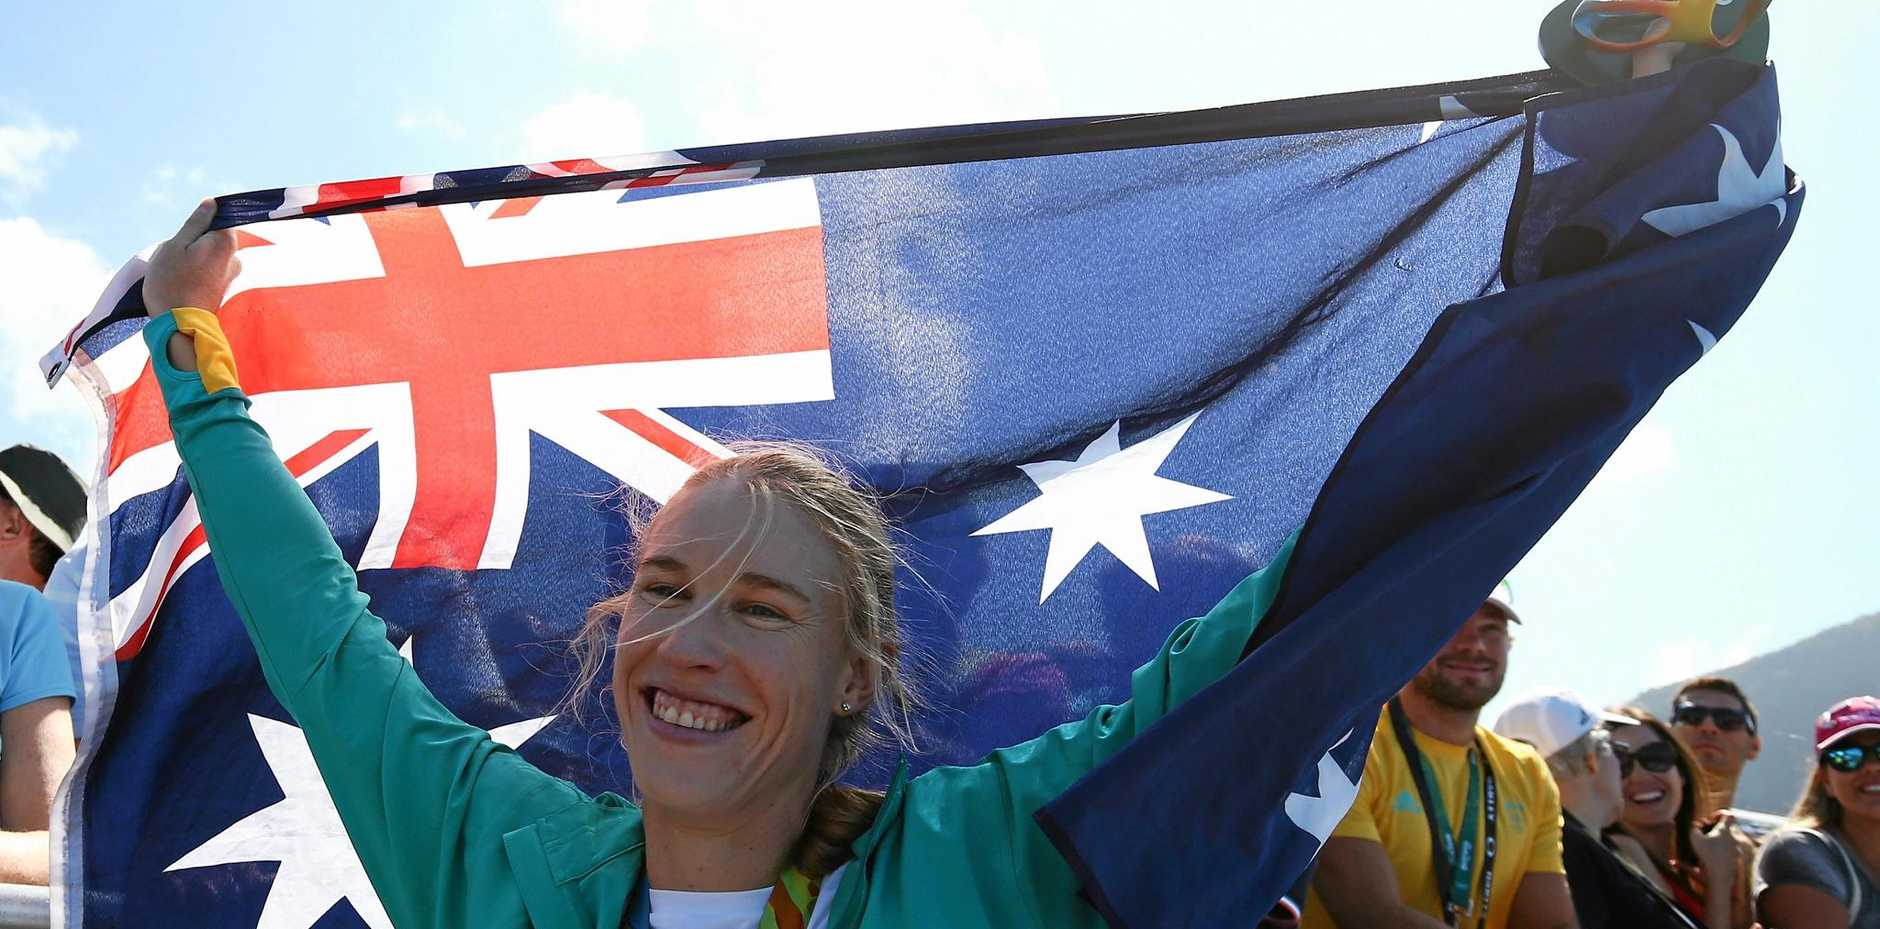 Gold medalist Kimberley Brennan of Australia celebrates after the medal ceremony for the women's single sculls.